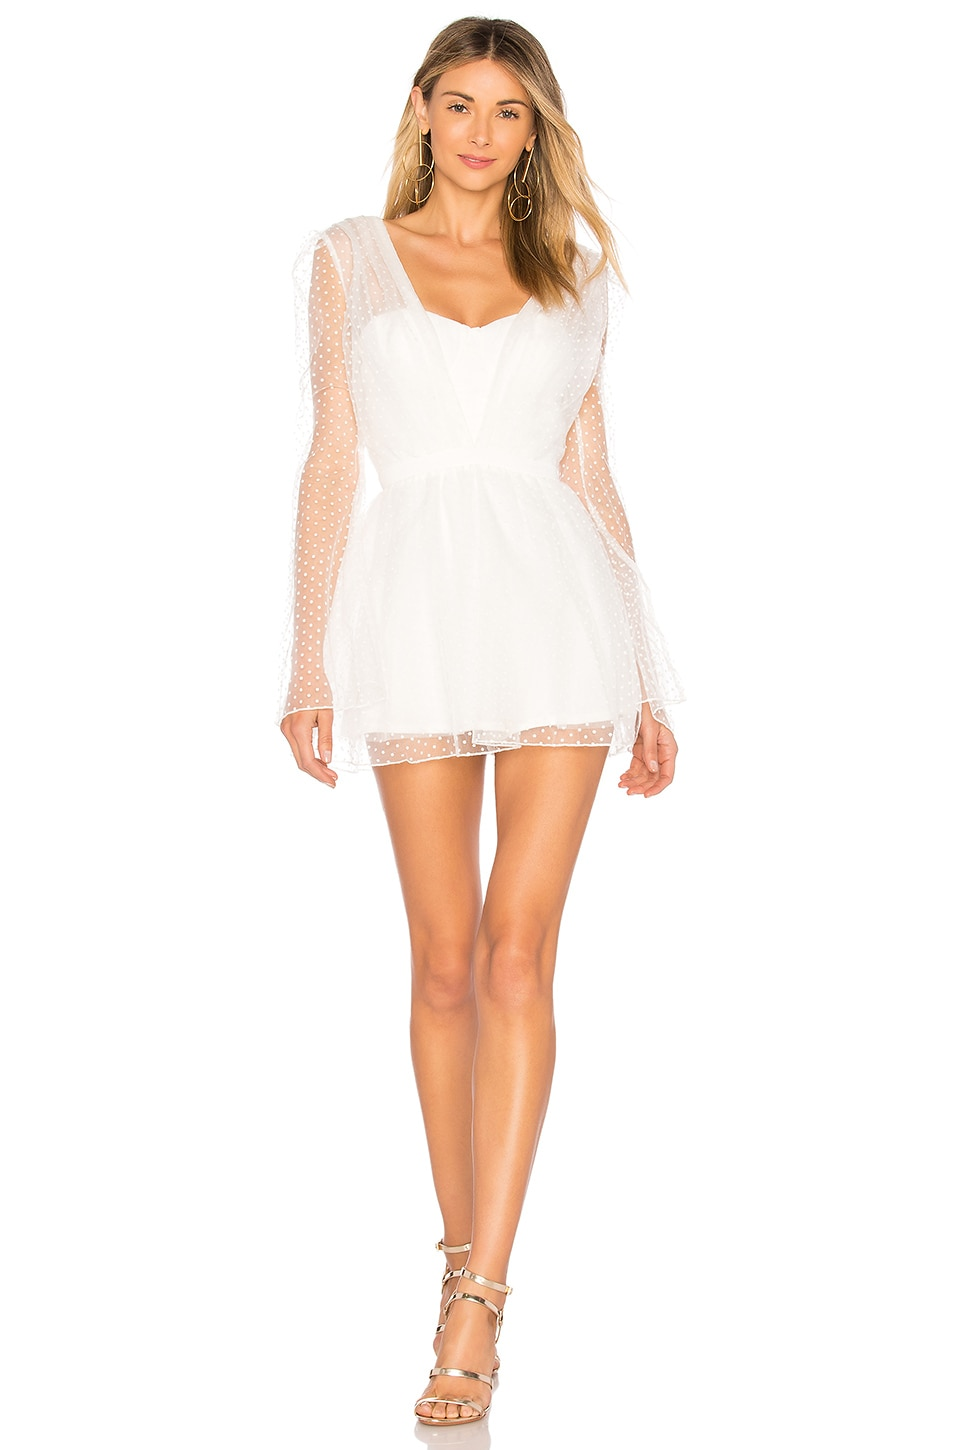 ASILIO Glowing Heart Playsuit in White